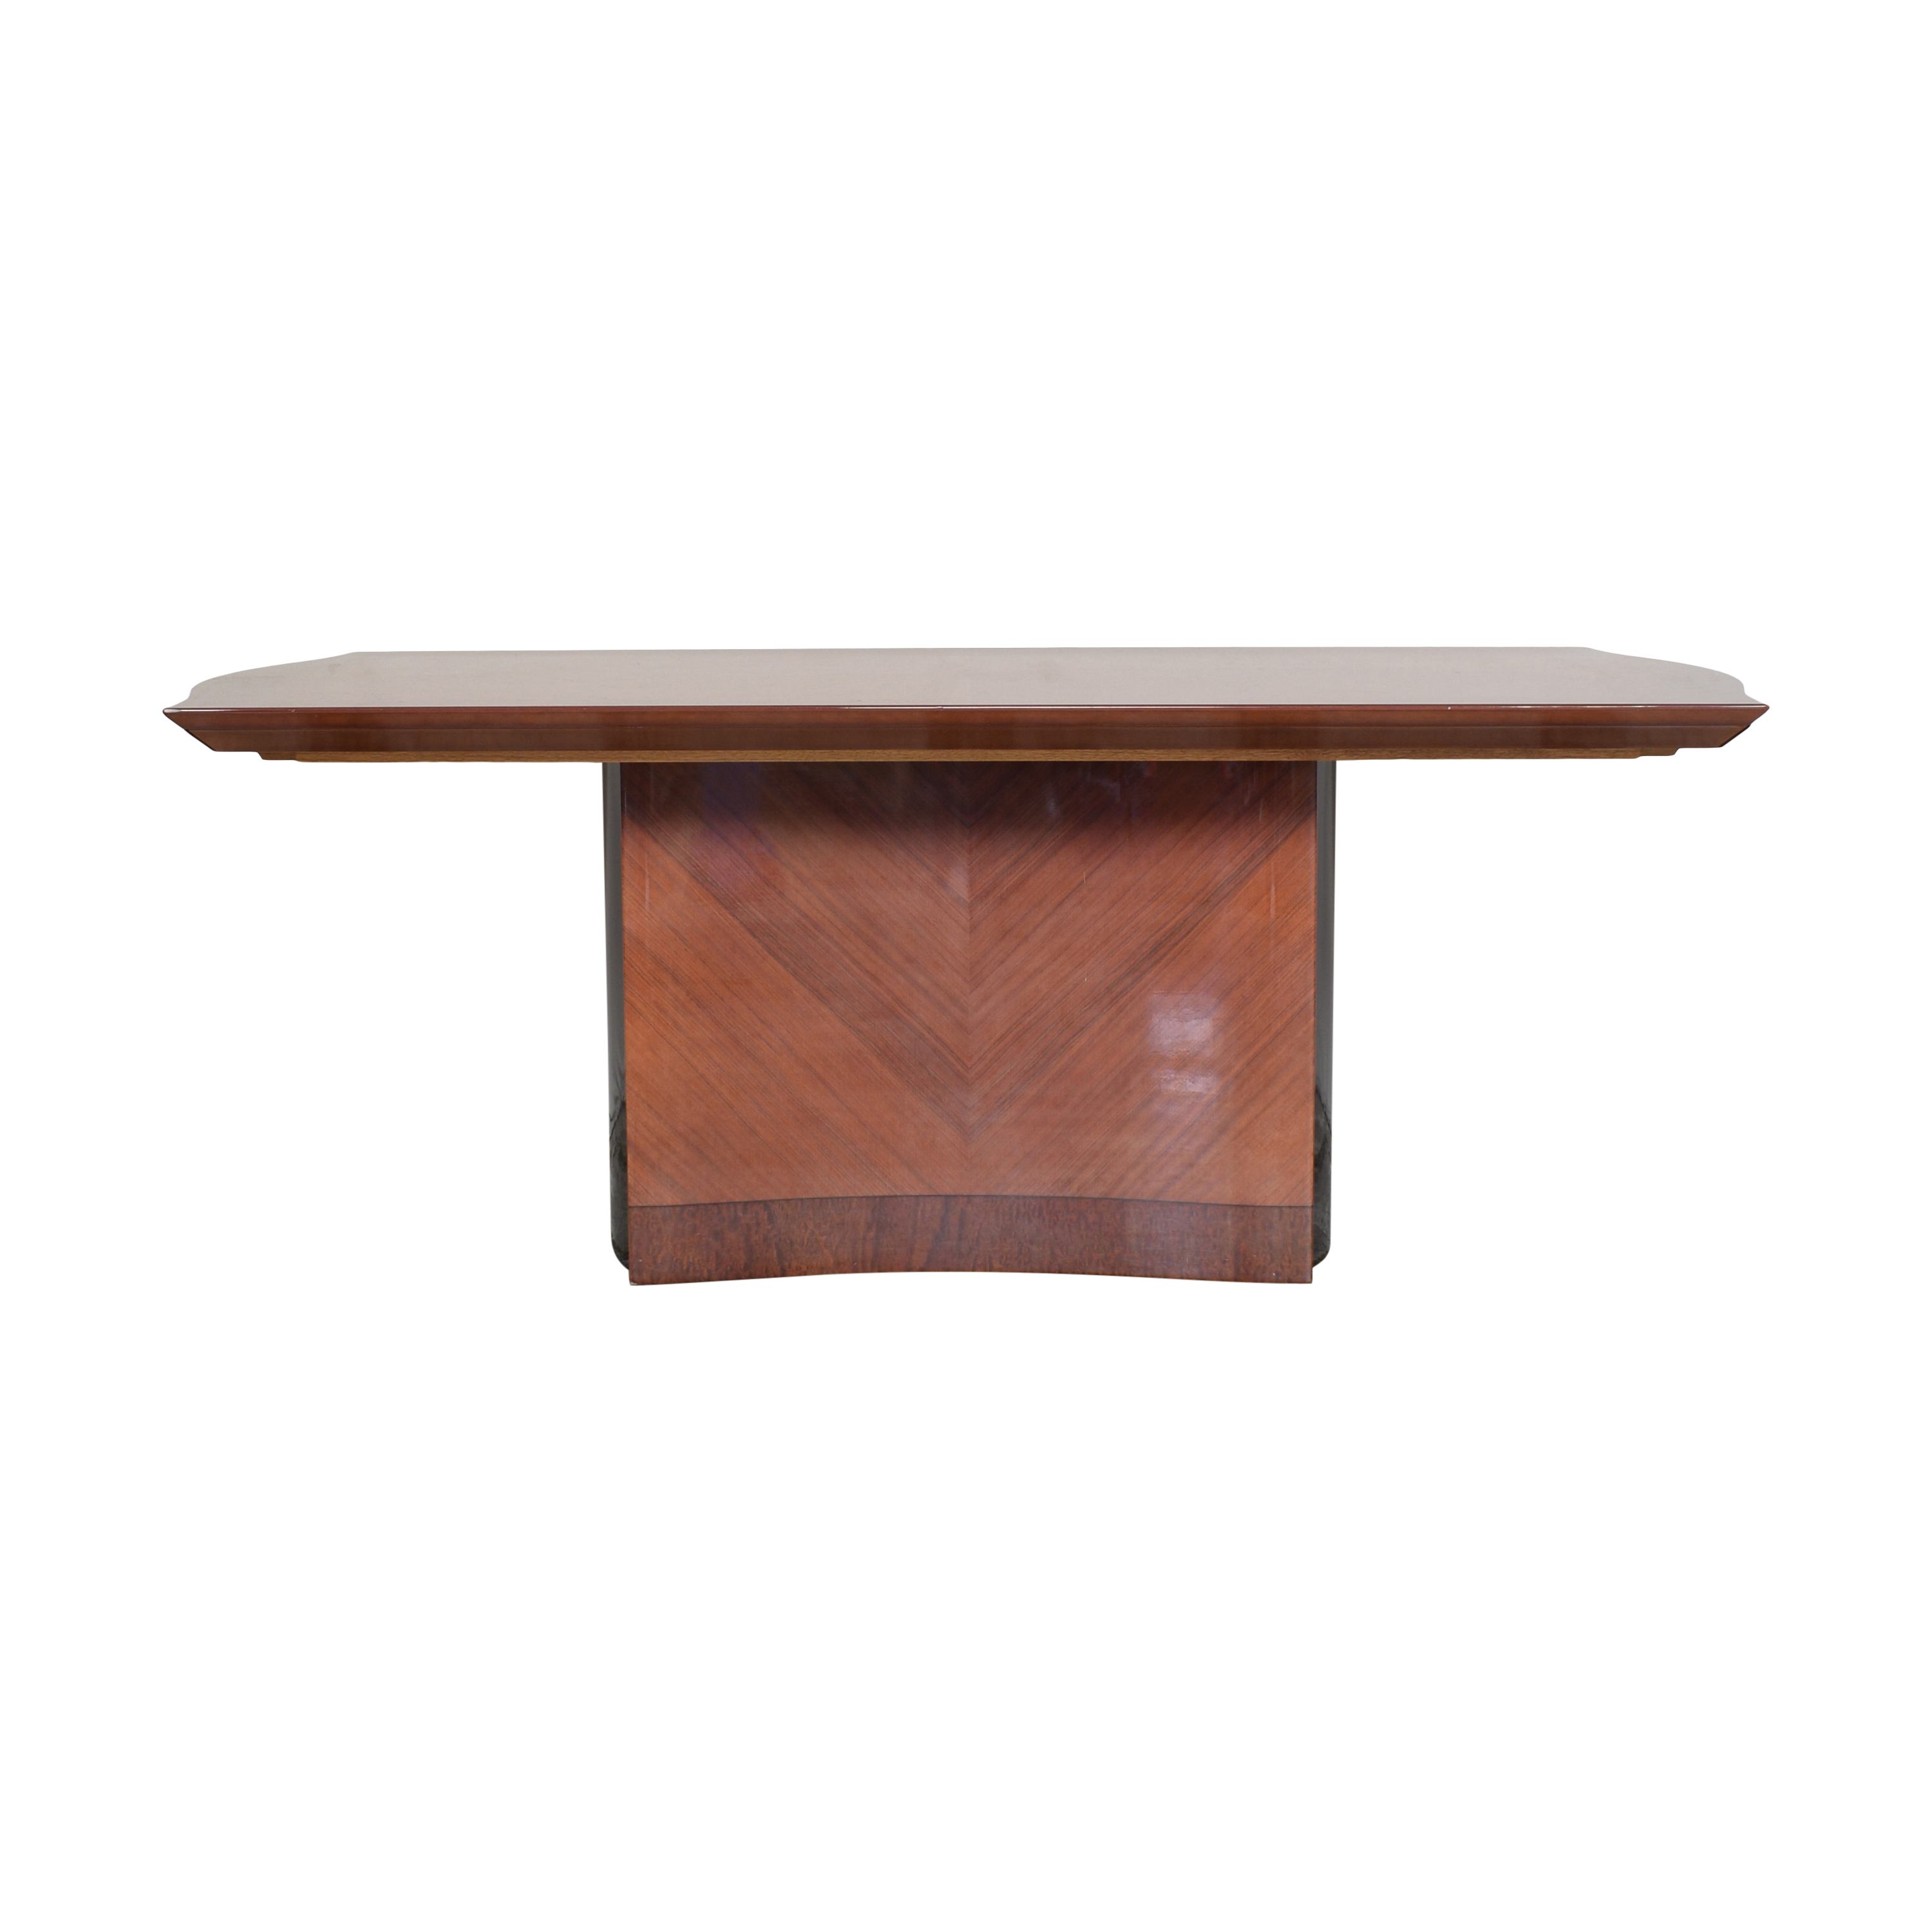 Excelsior Designs Excelsior Designs Extendable Dining Table brown